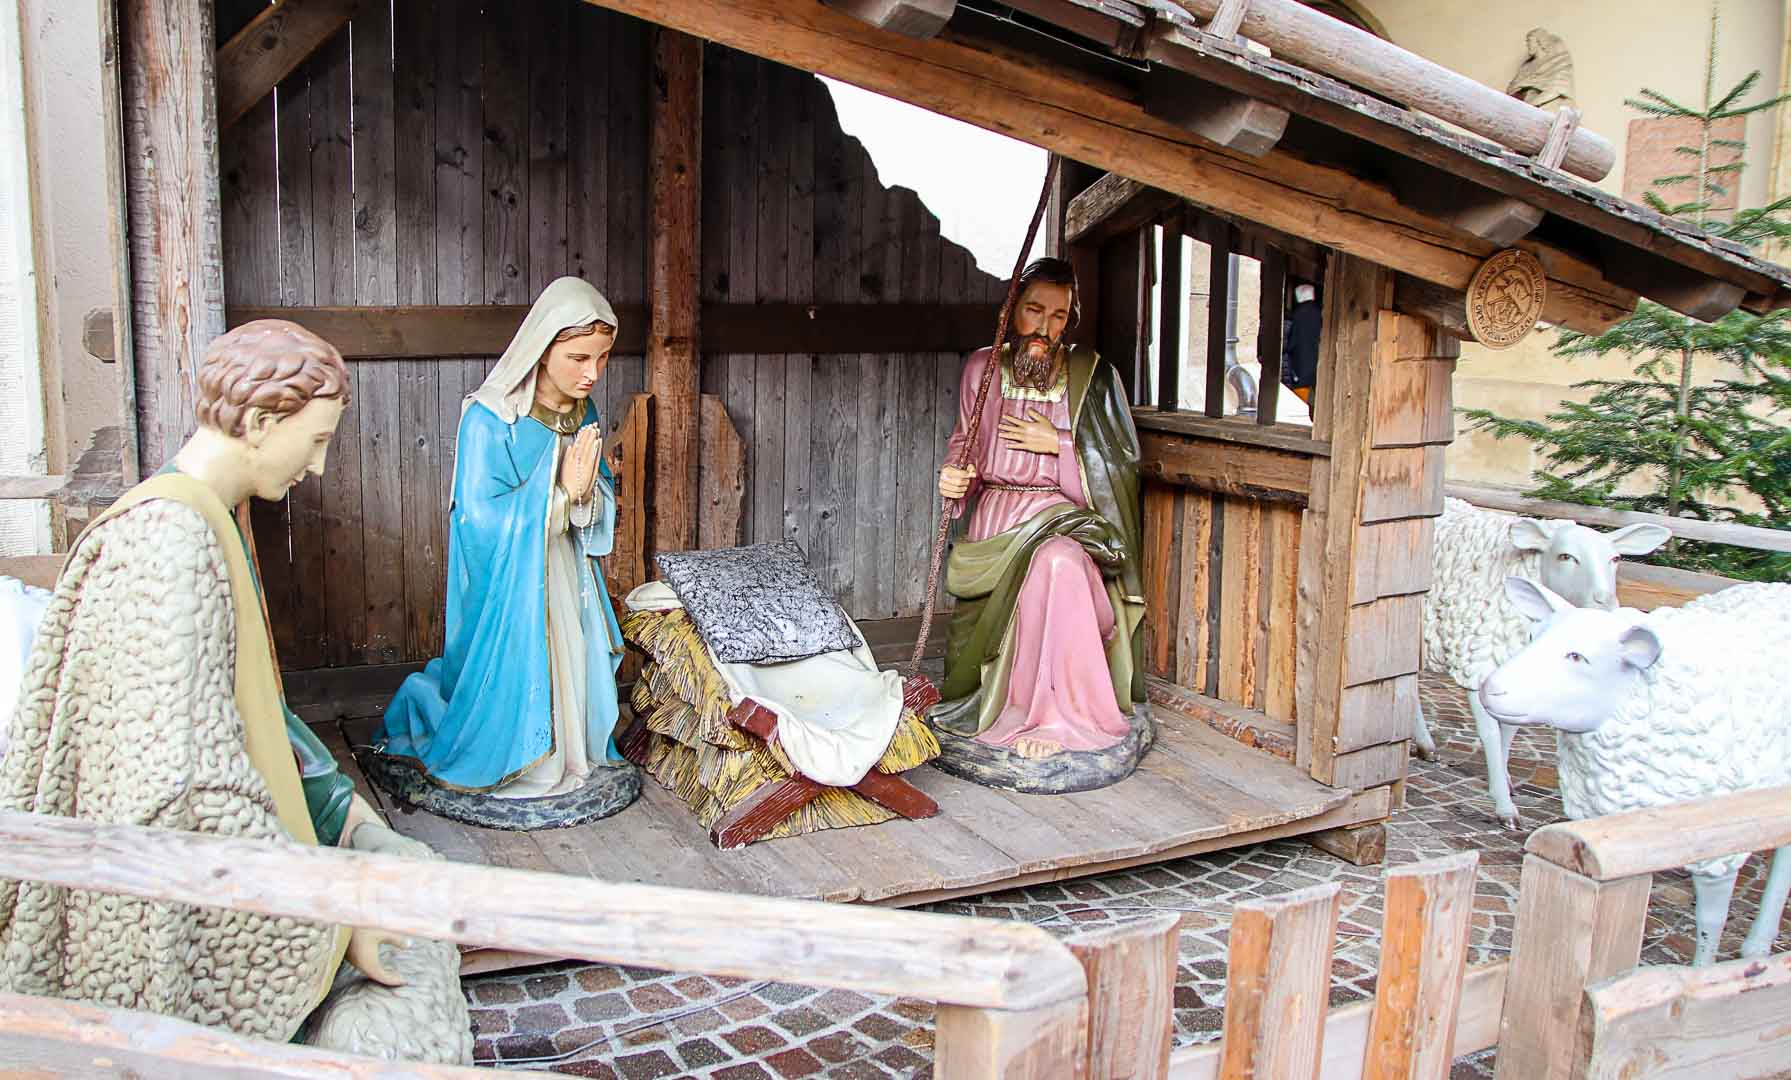 A depiction of the Nativity of Jesus